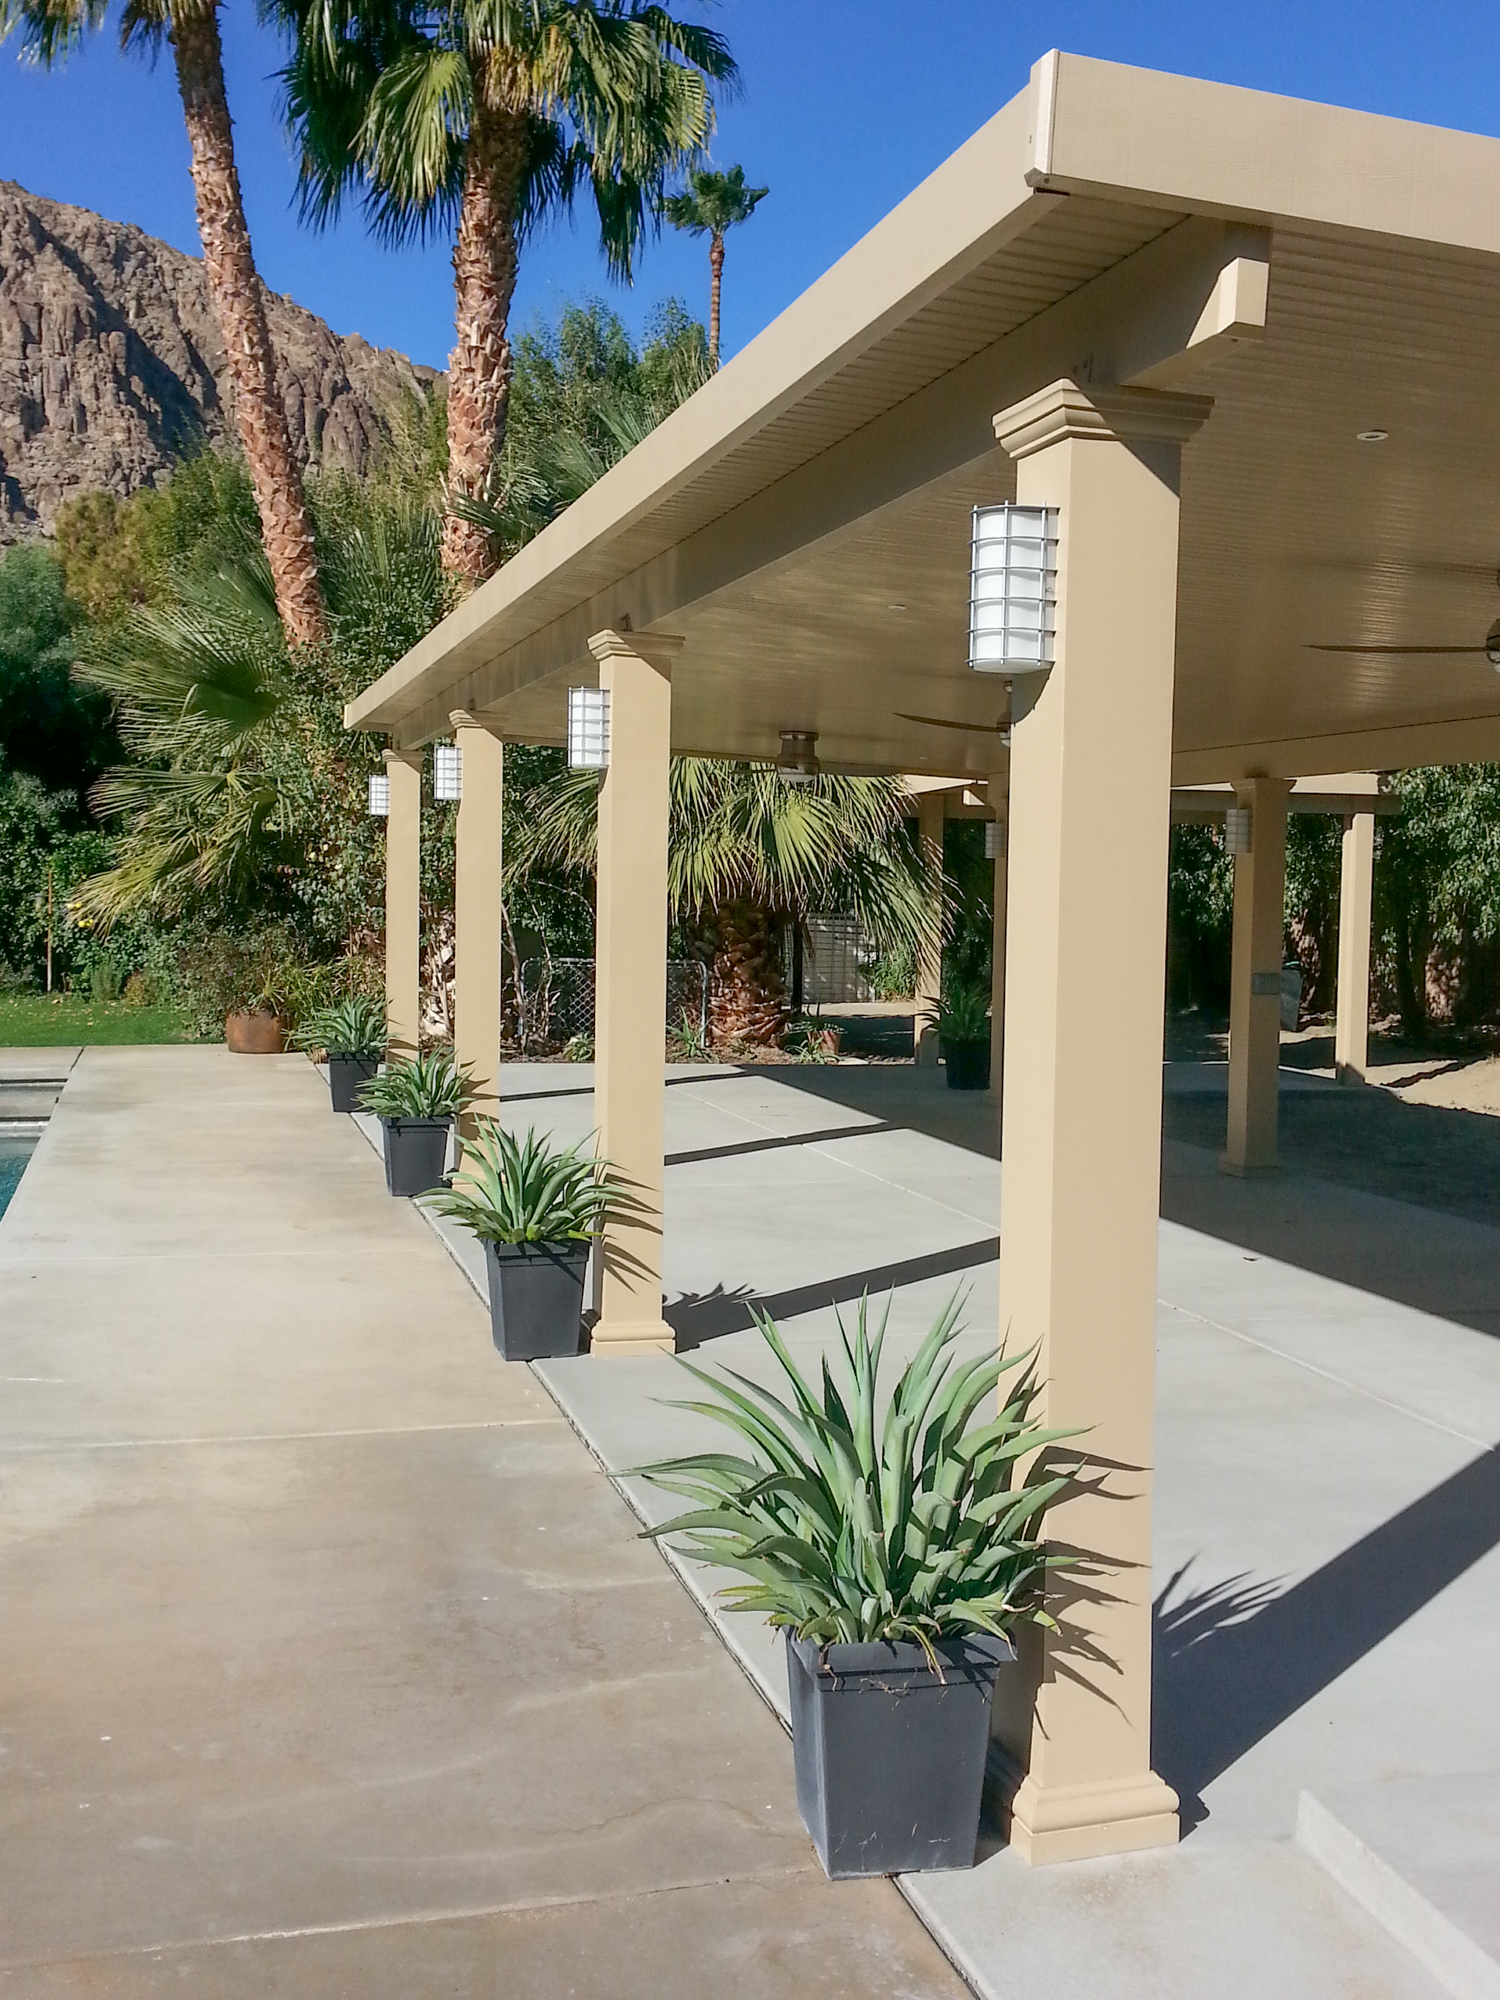 Patio Cover Designs| Patio Ideas | Valley Patios | Palm ... on Backyard Patio Cover Ideas  id=93184